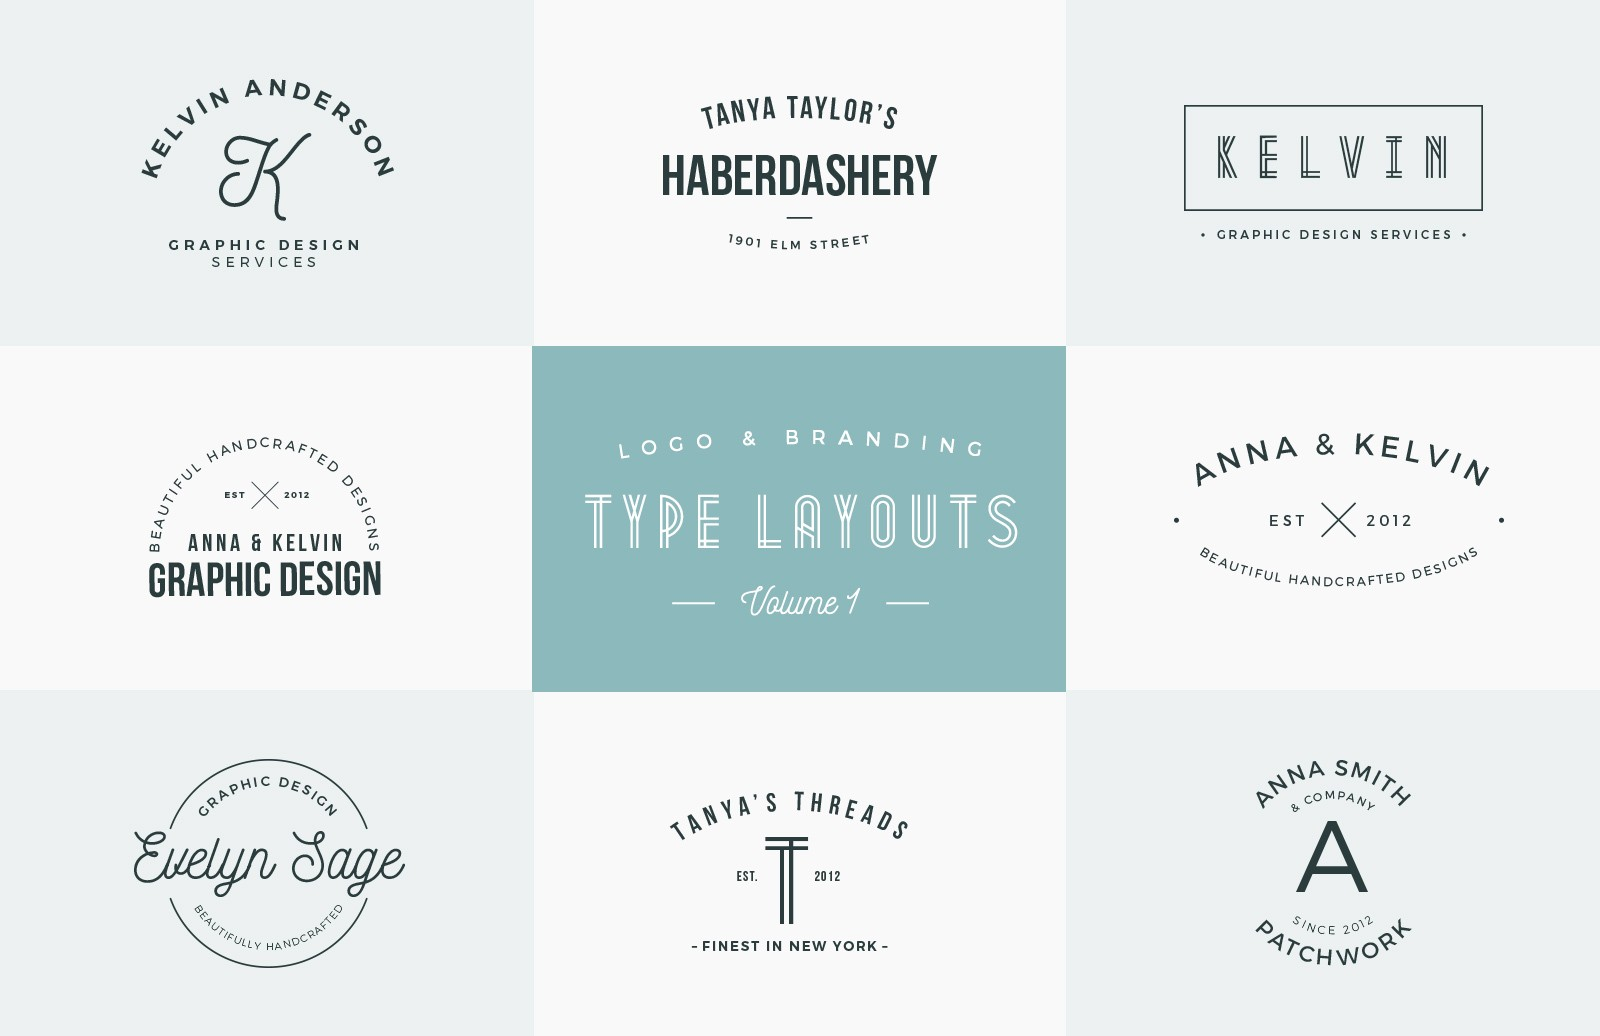 Logo & Branding Type Layouts - Vol 1